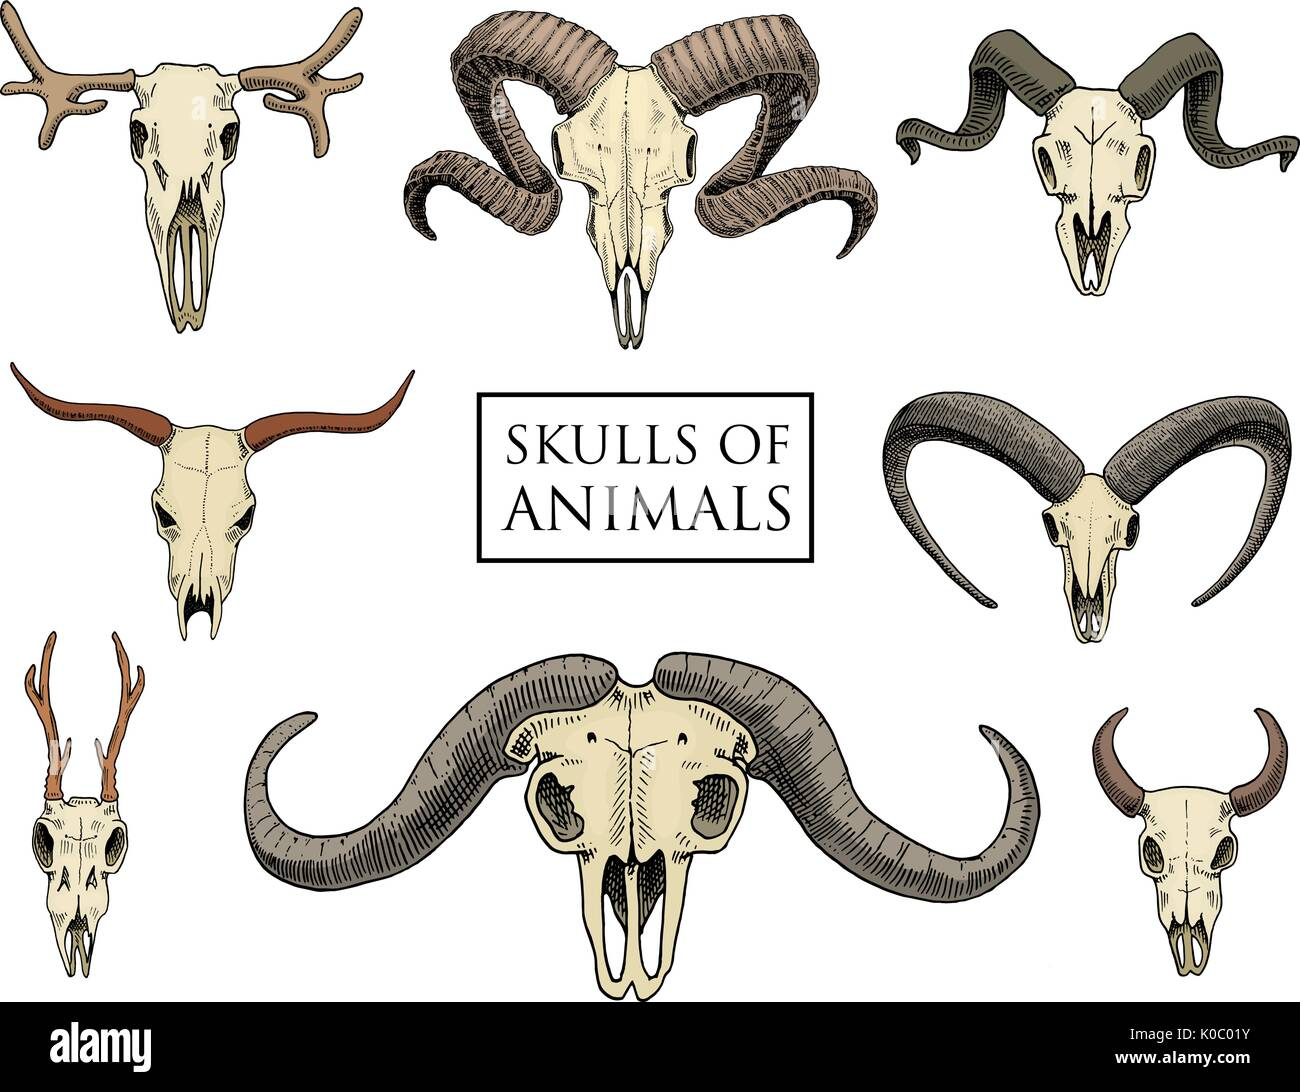 Sheep Elk Stock Photos & Sheep Elk Stock Images - Alamy